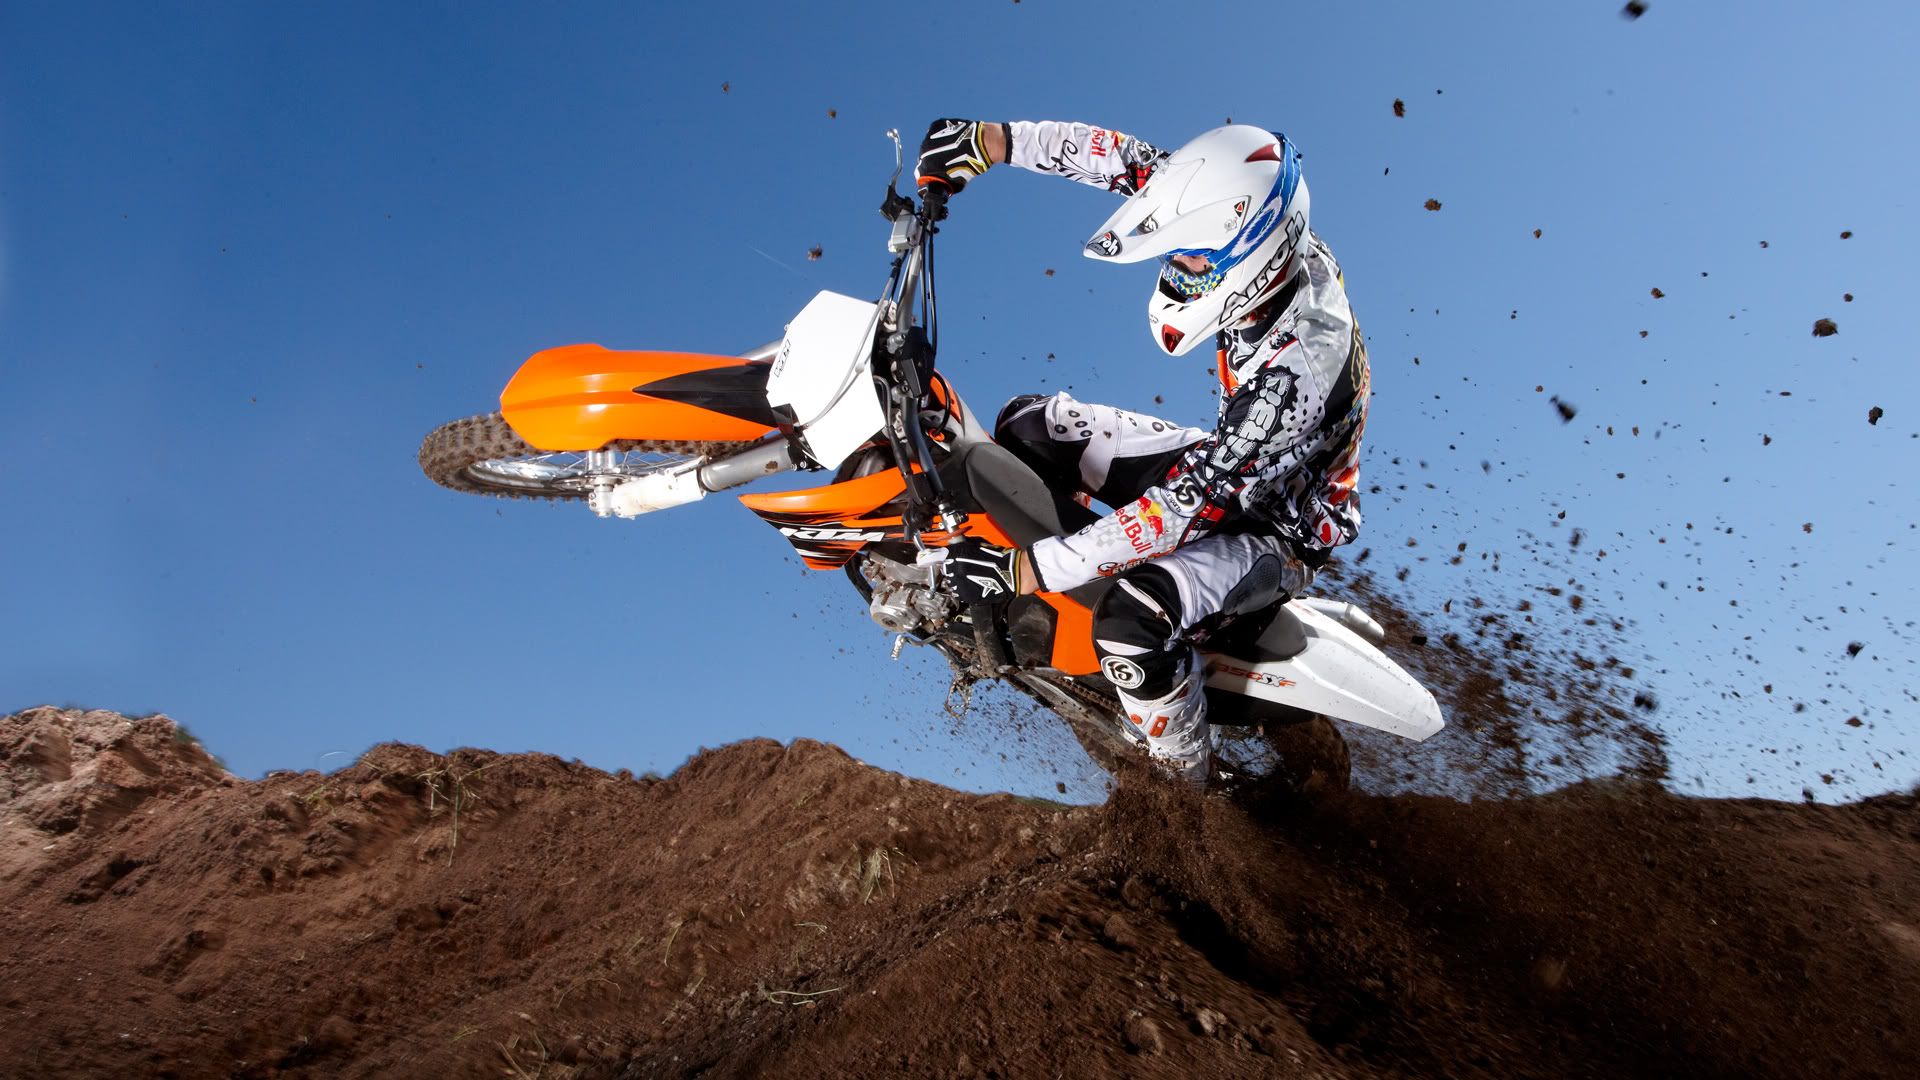 Awesome KTM Wallpaper